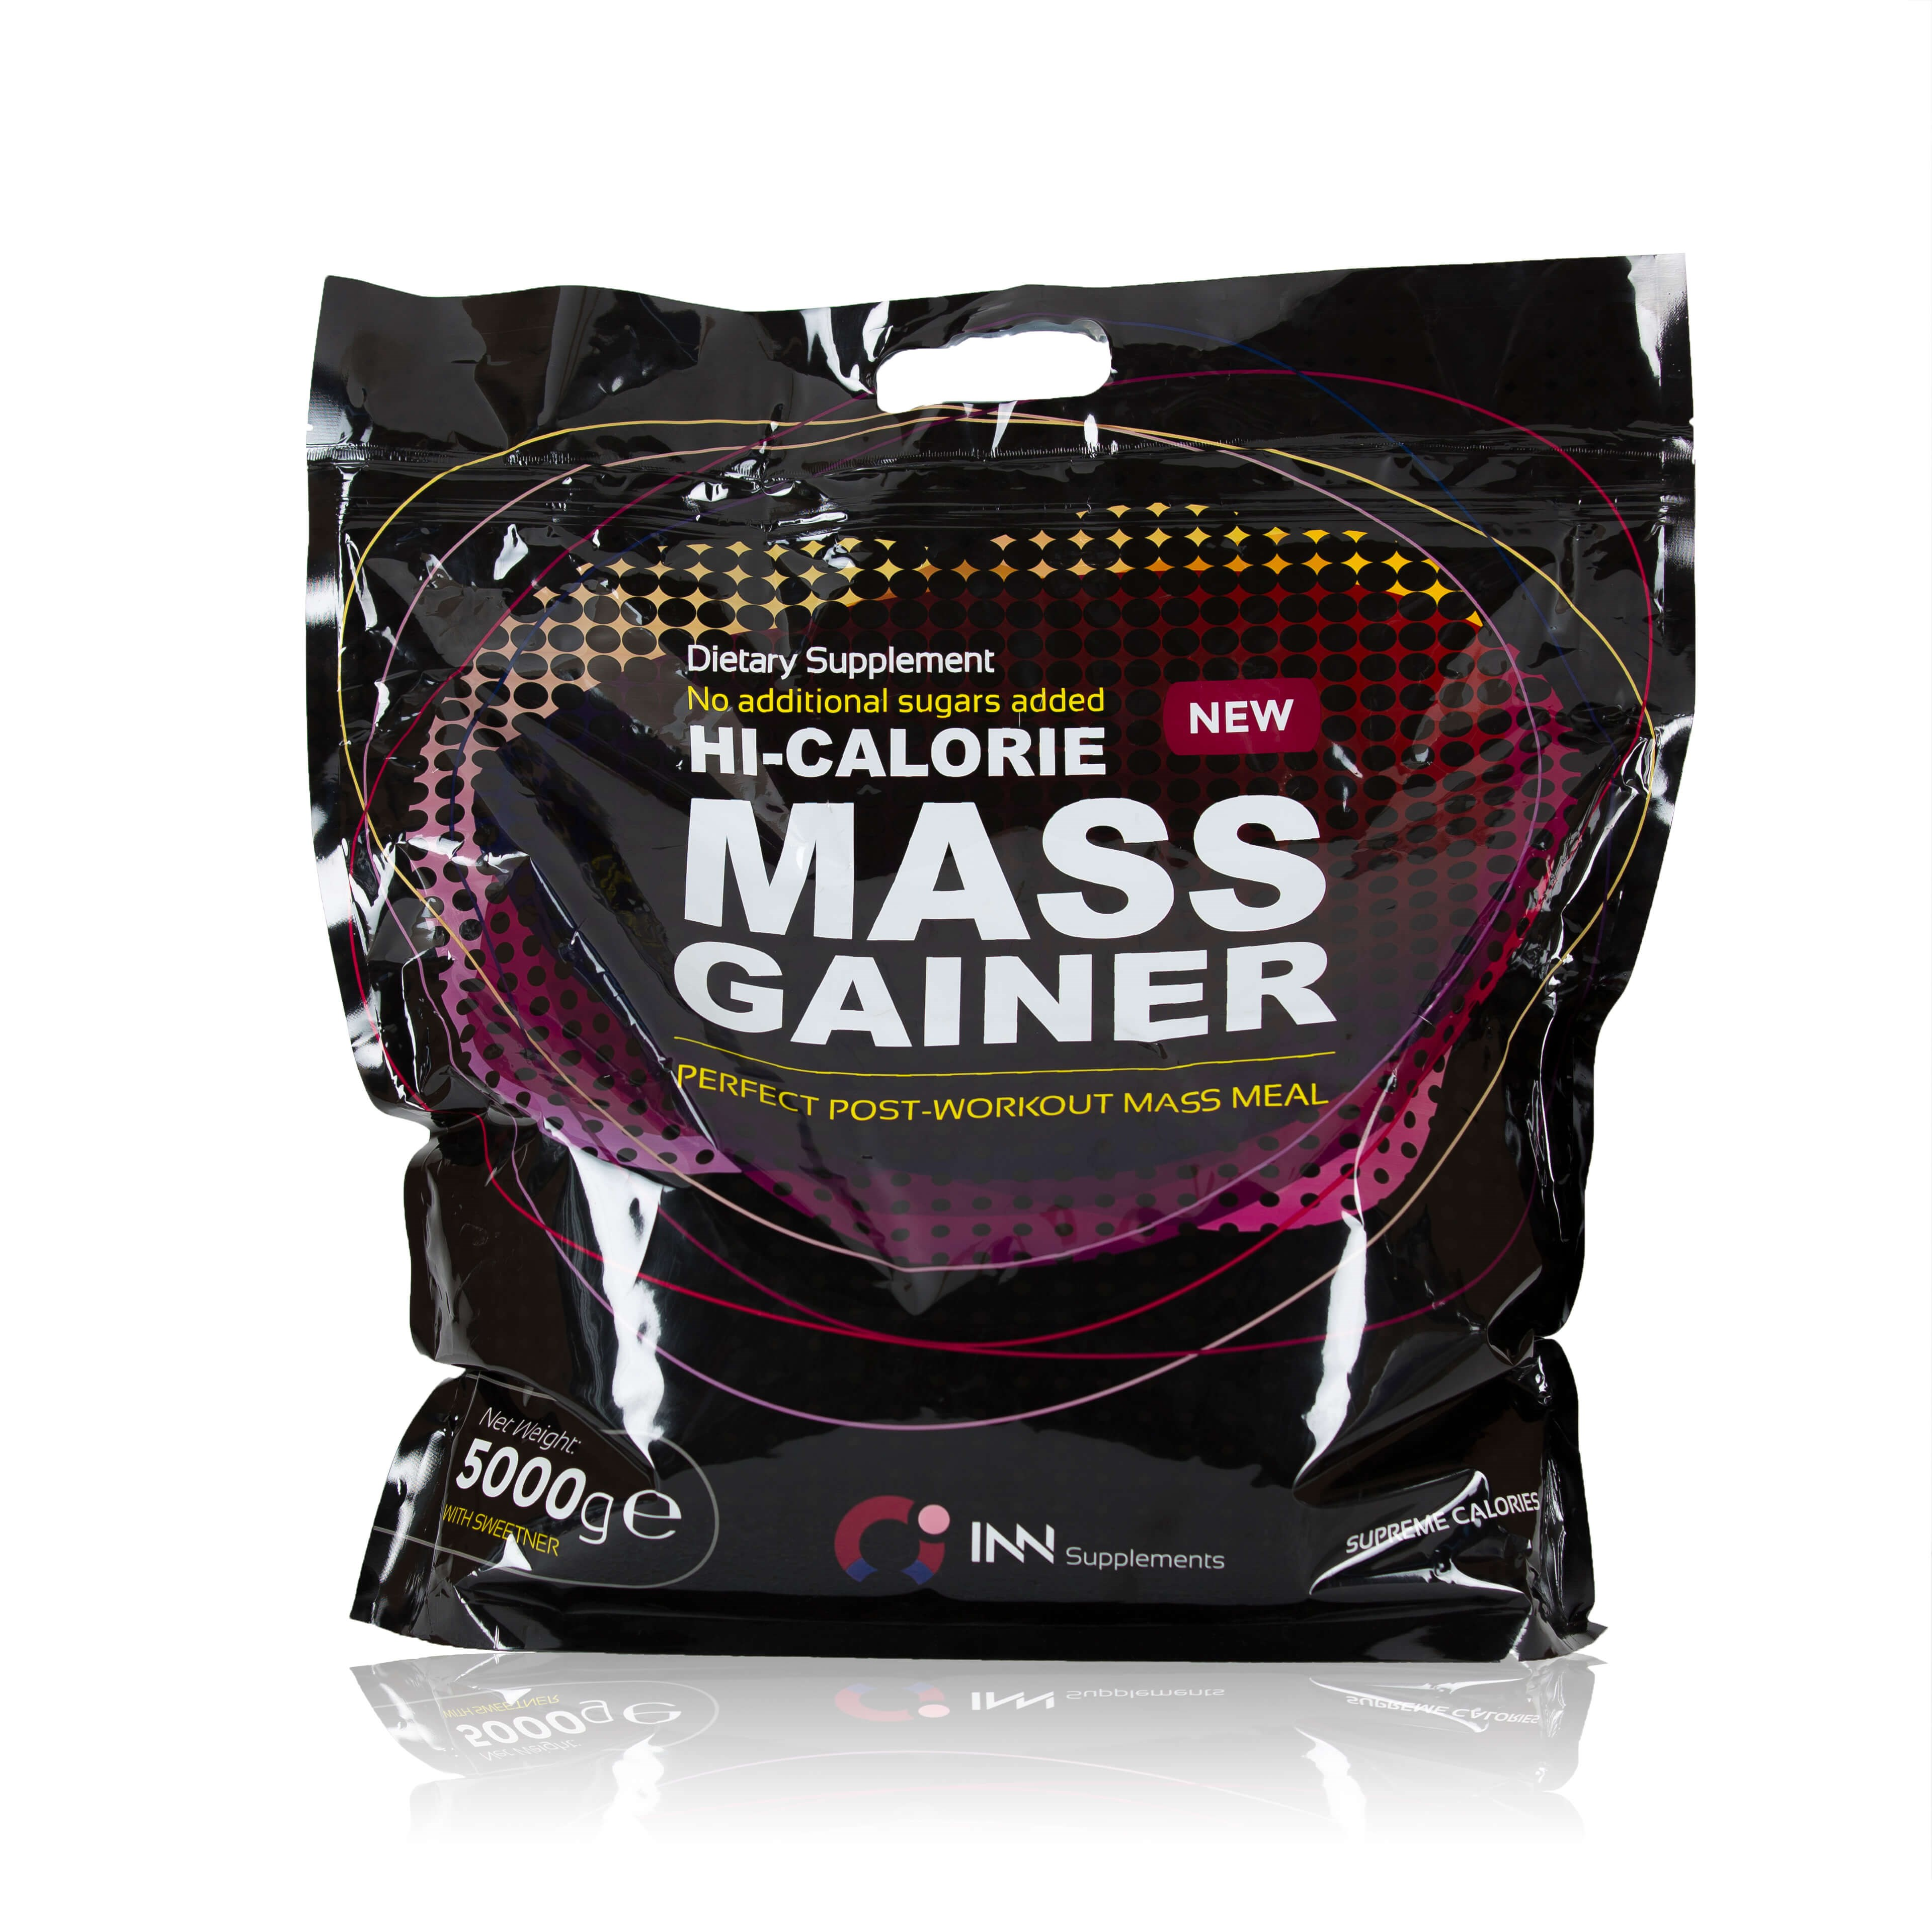 INN Hi-Calorie Mass Gainer 5000g